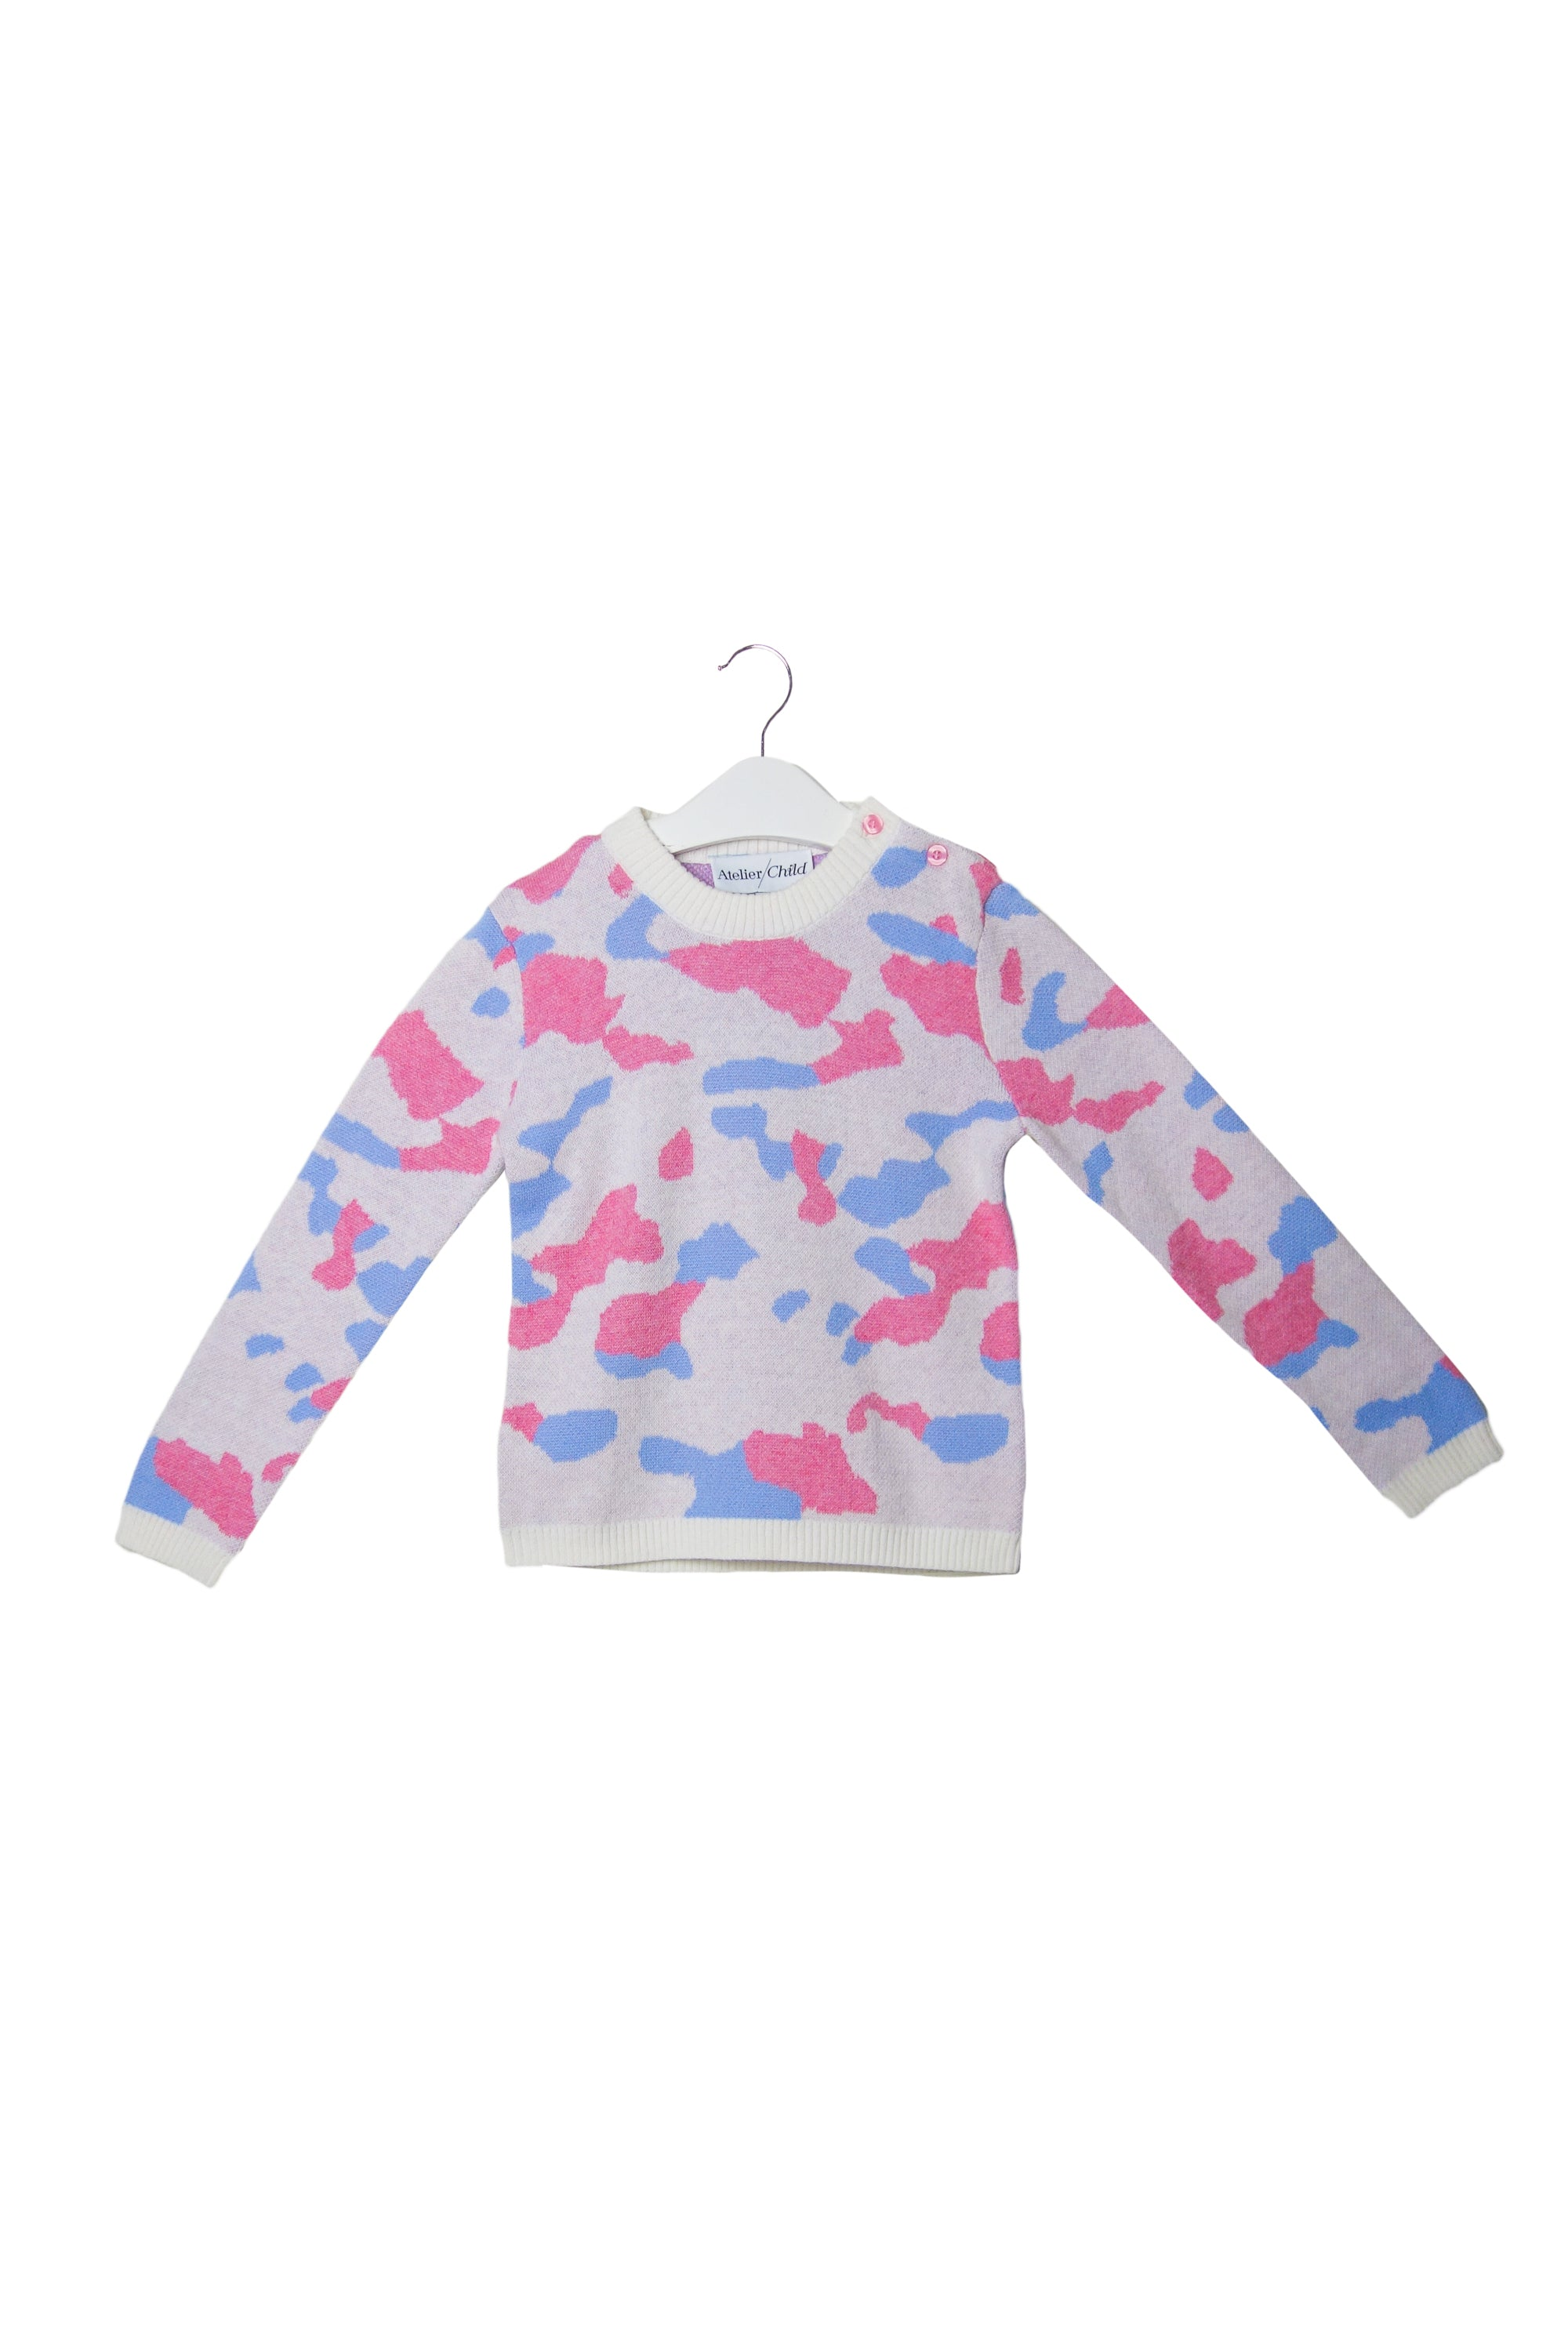 10002840 Atelier/Child Kids~Sweater 4-5T at Retykle